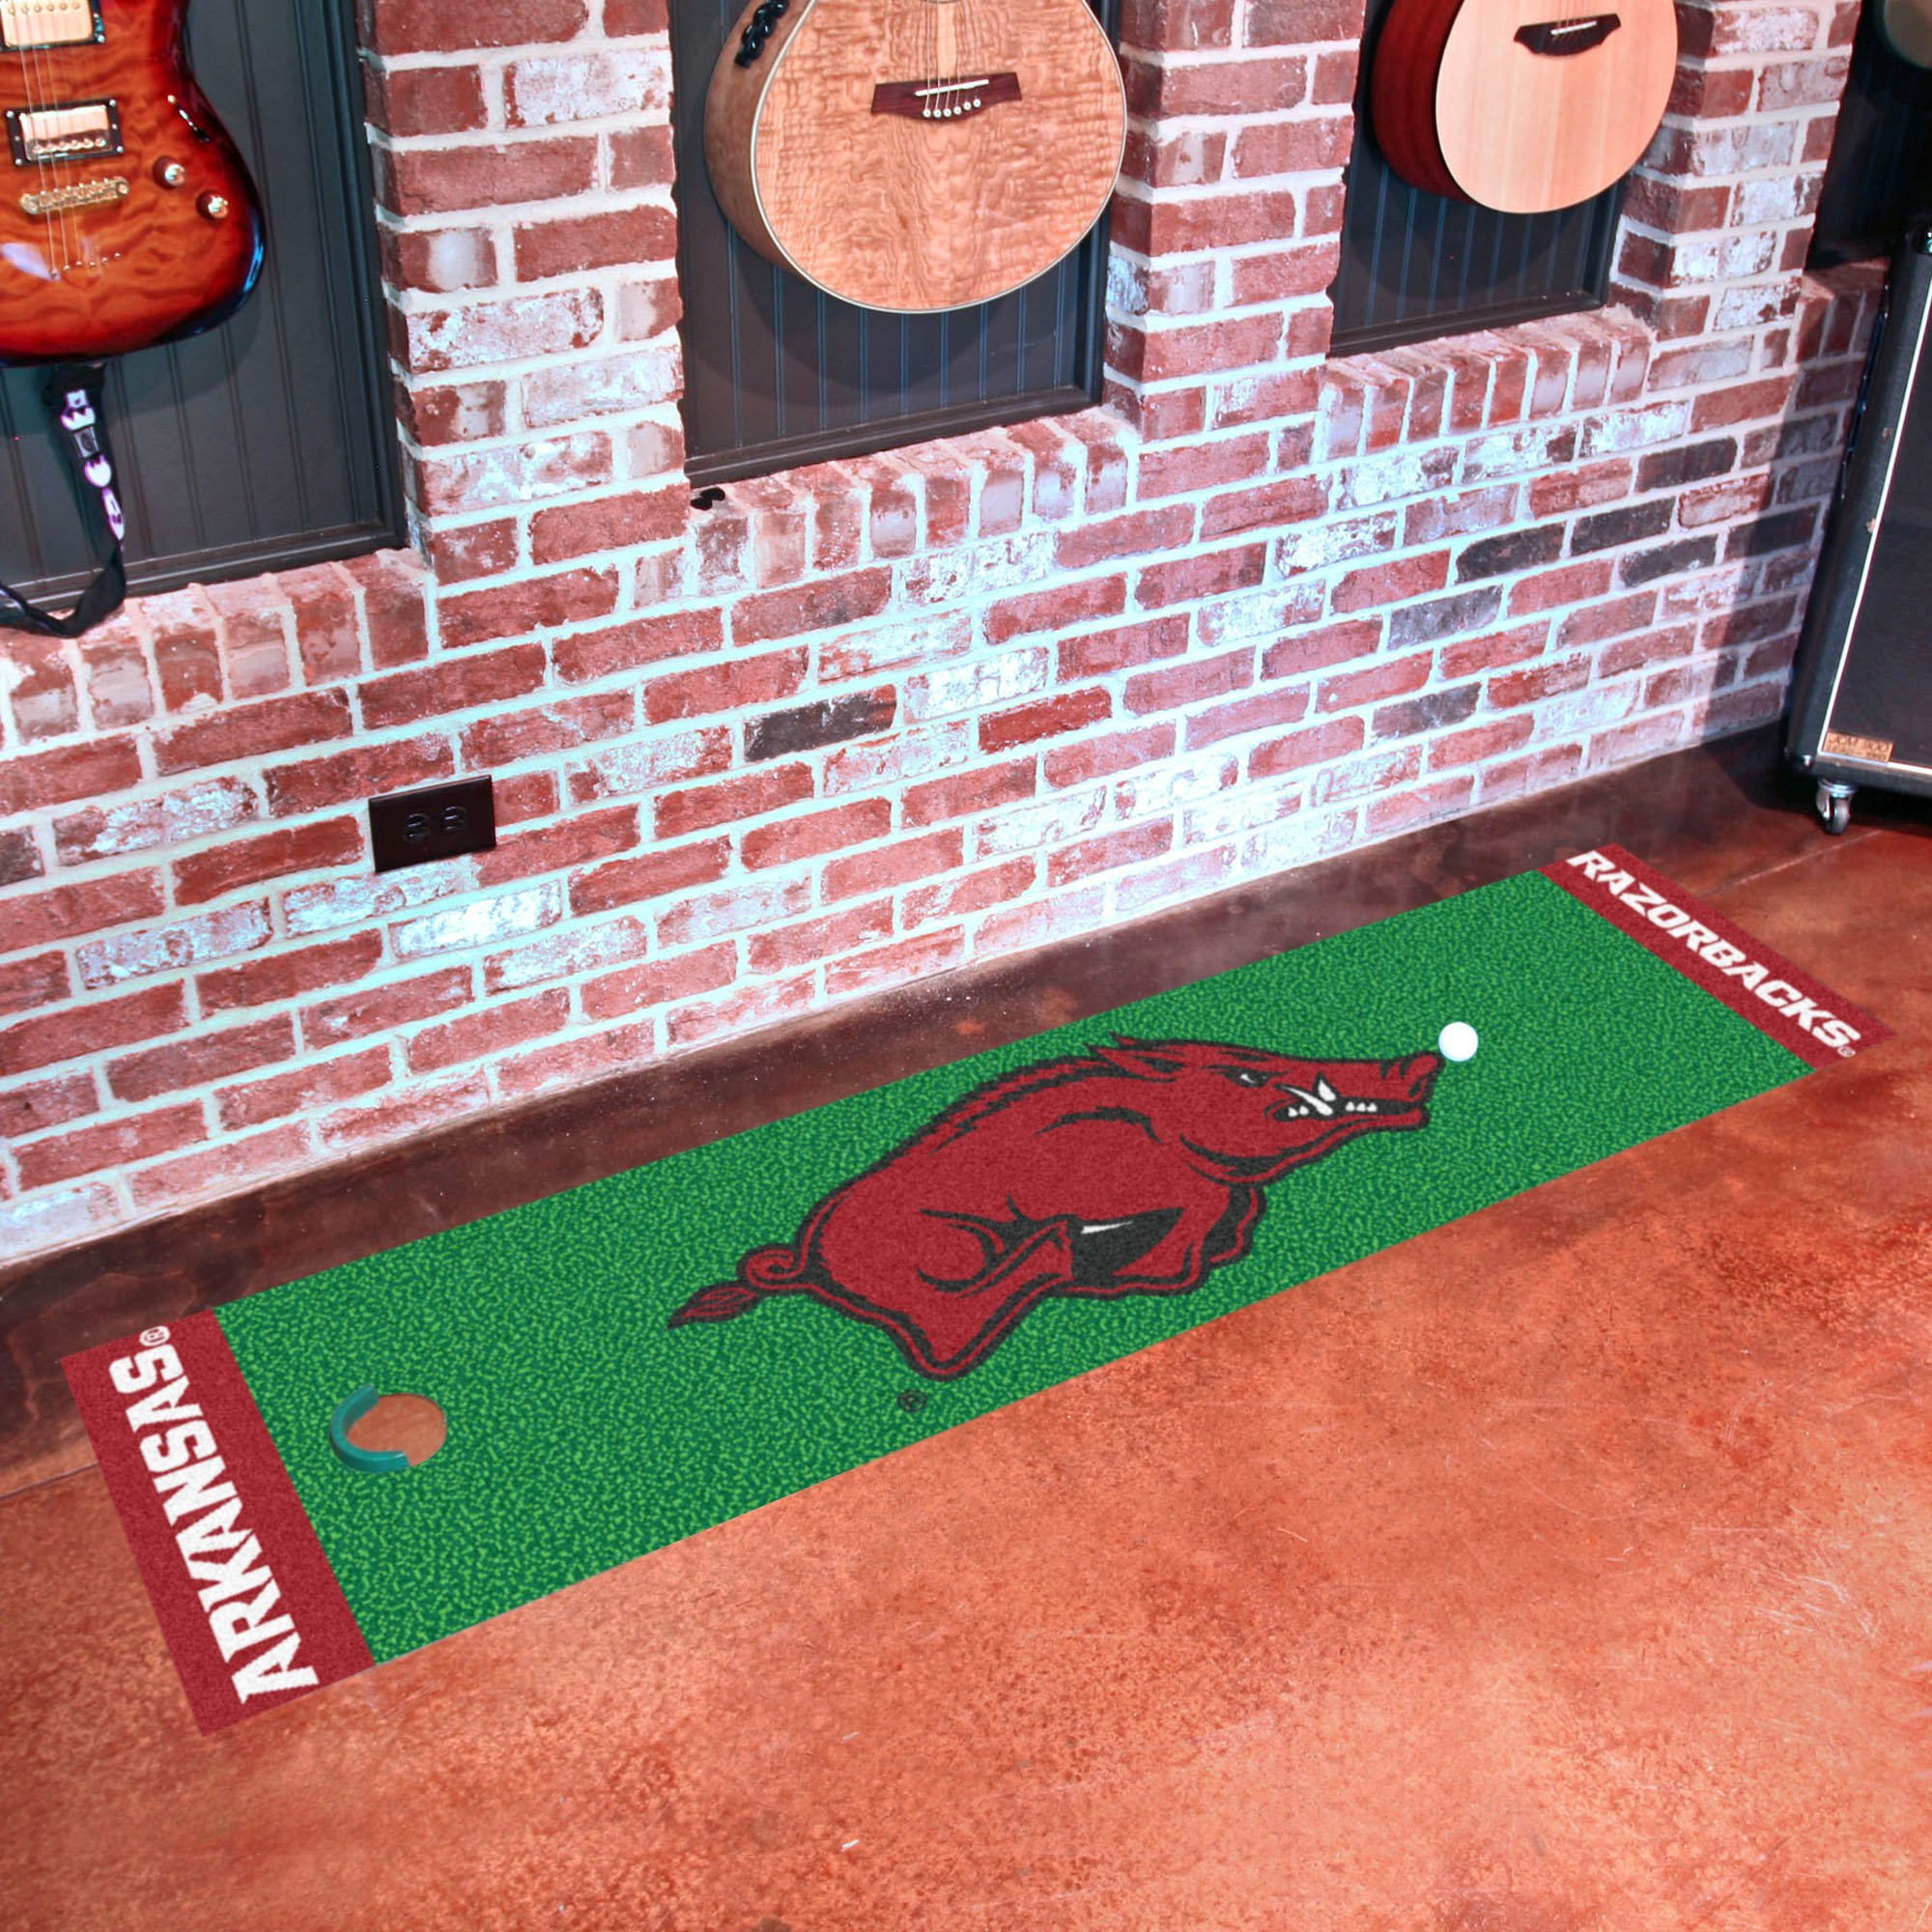 NCAA University of Arkansas Razorbacks Putting Green Mat Golf Accessory by Unknown (Image #2)